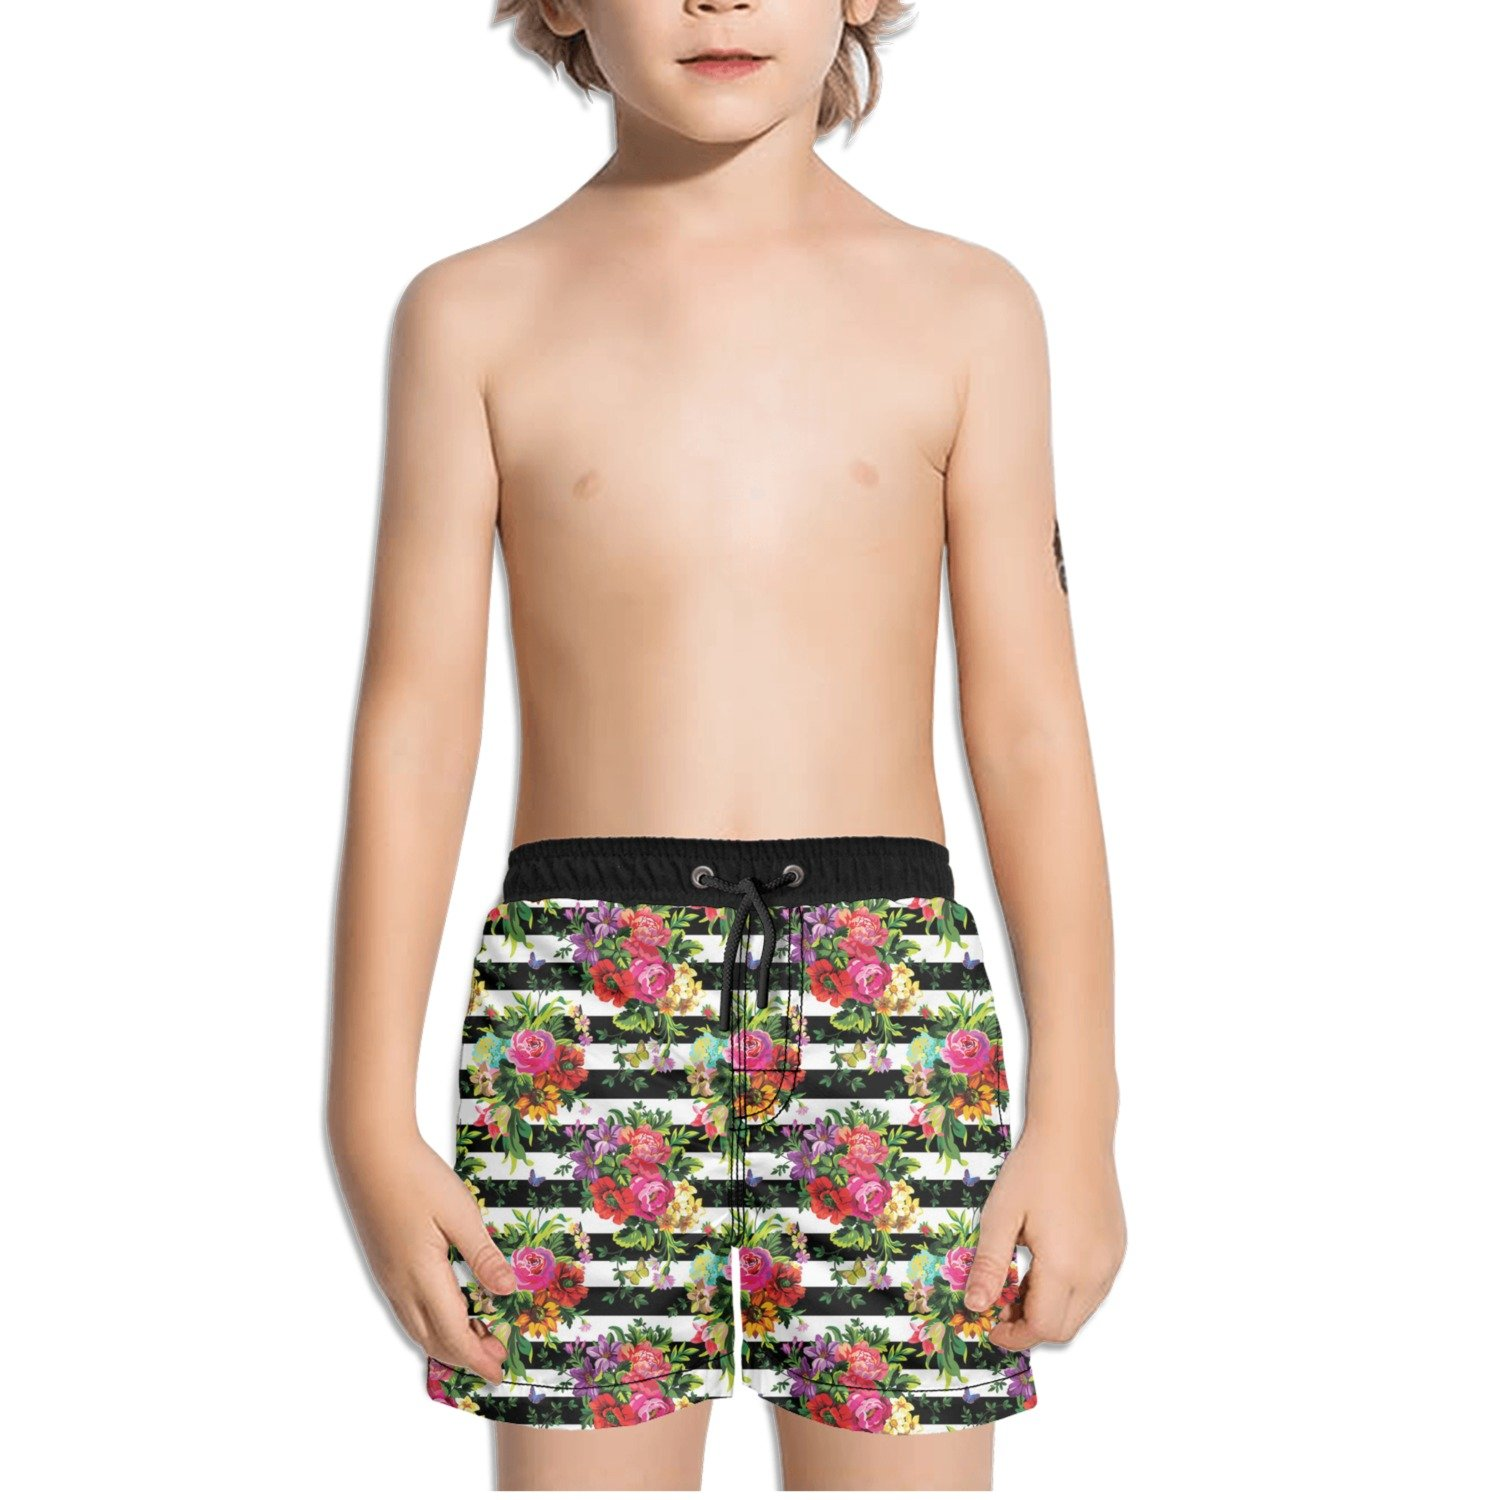 FullBo Vintage Spring Floral Stripes Little Boys Short Swim Trunks Quick Dry Beach Shorts